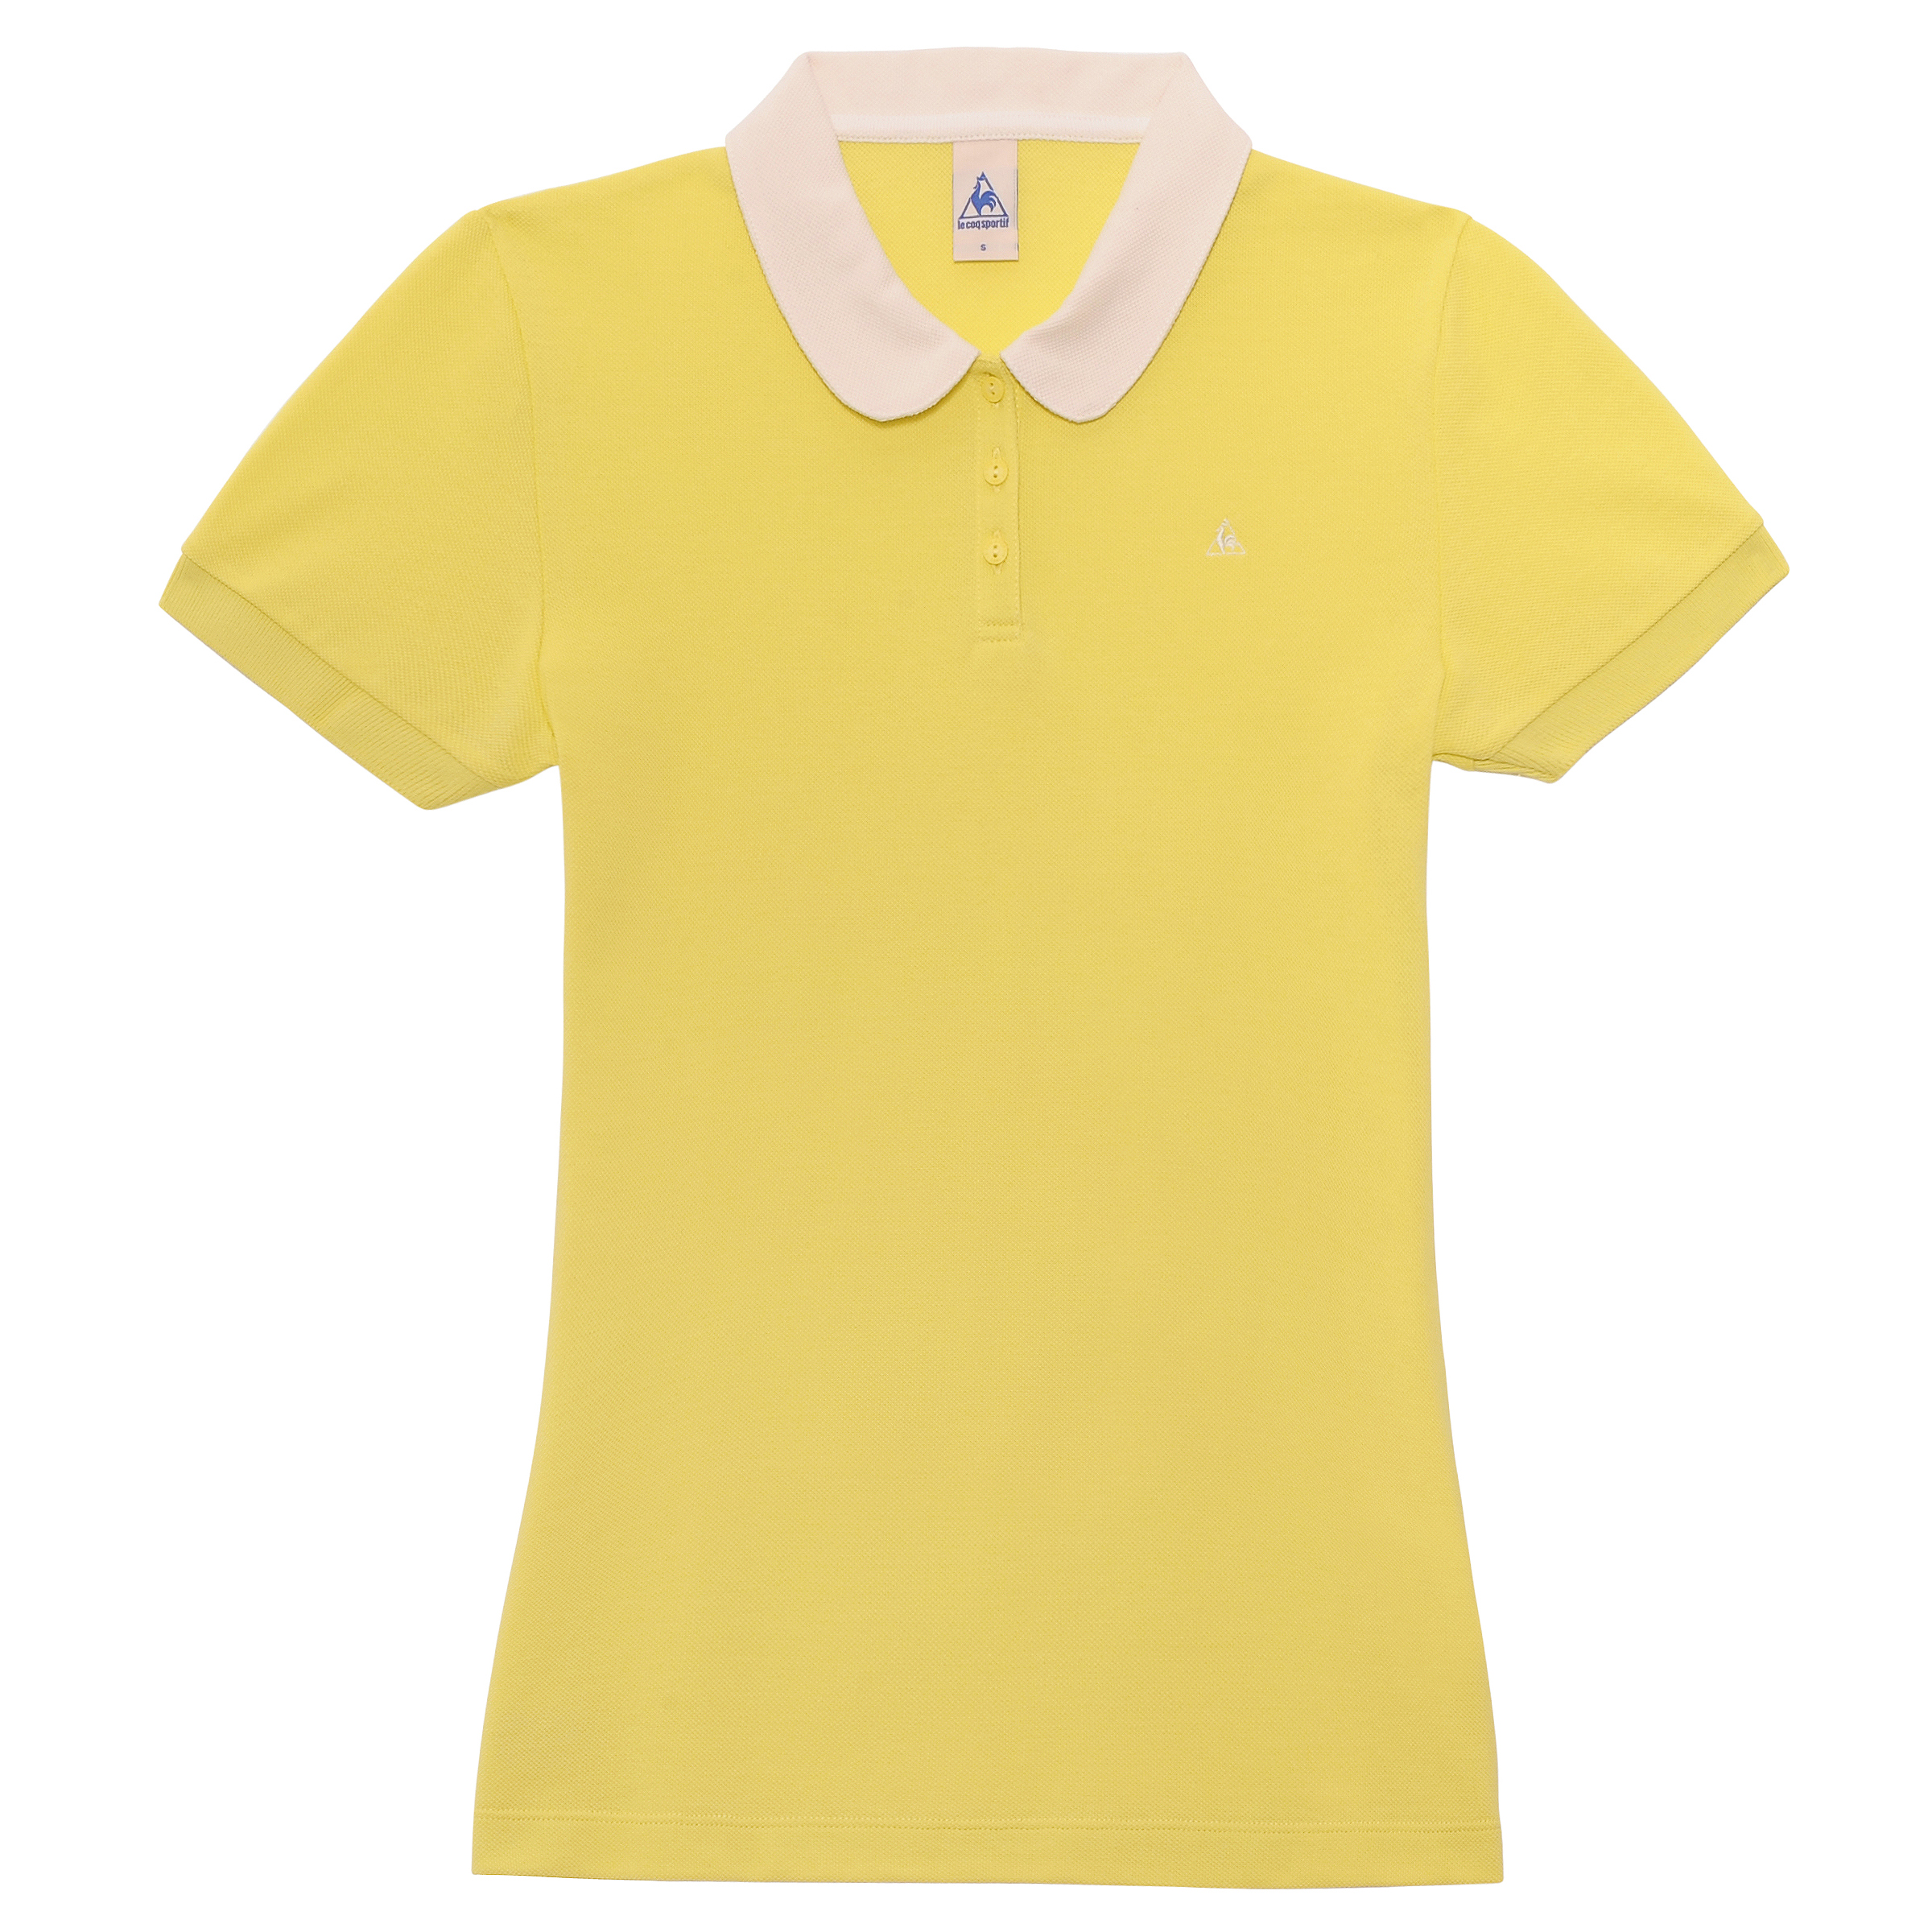 Le Tour de France by Le Coq Sportif La Grande Boucle Polo - Lemon Tonic - Womens